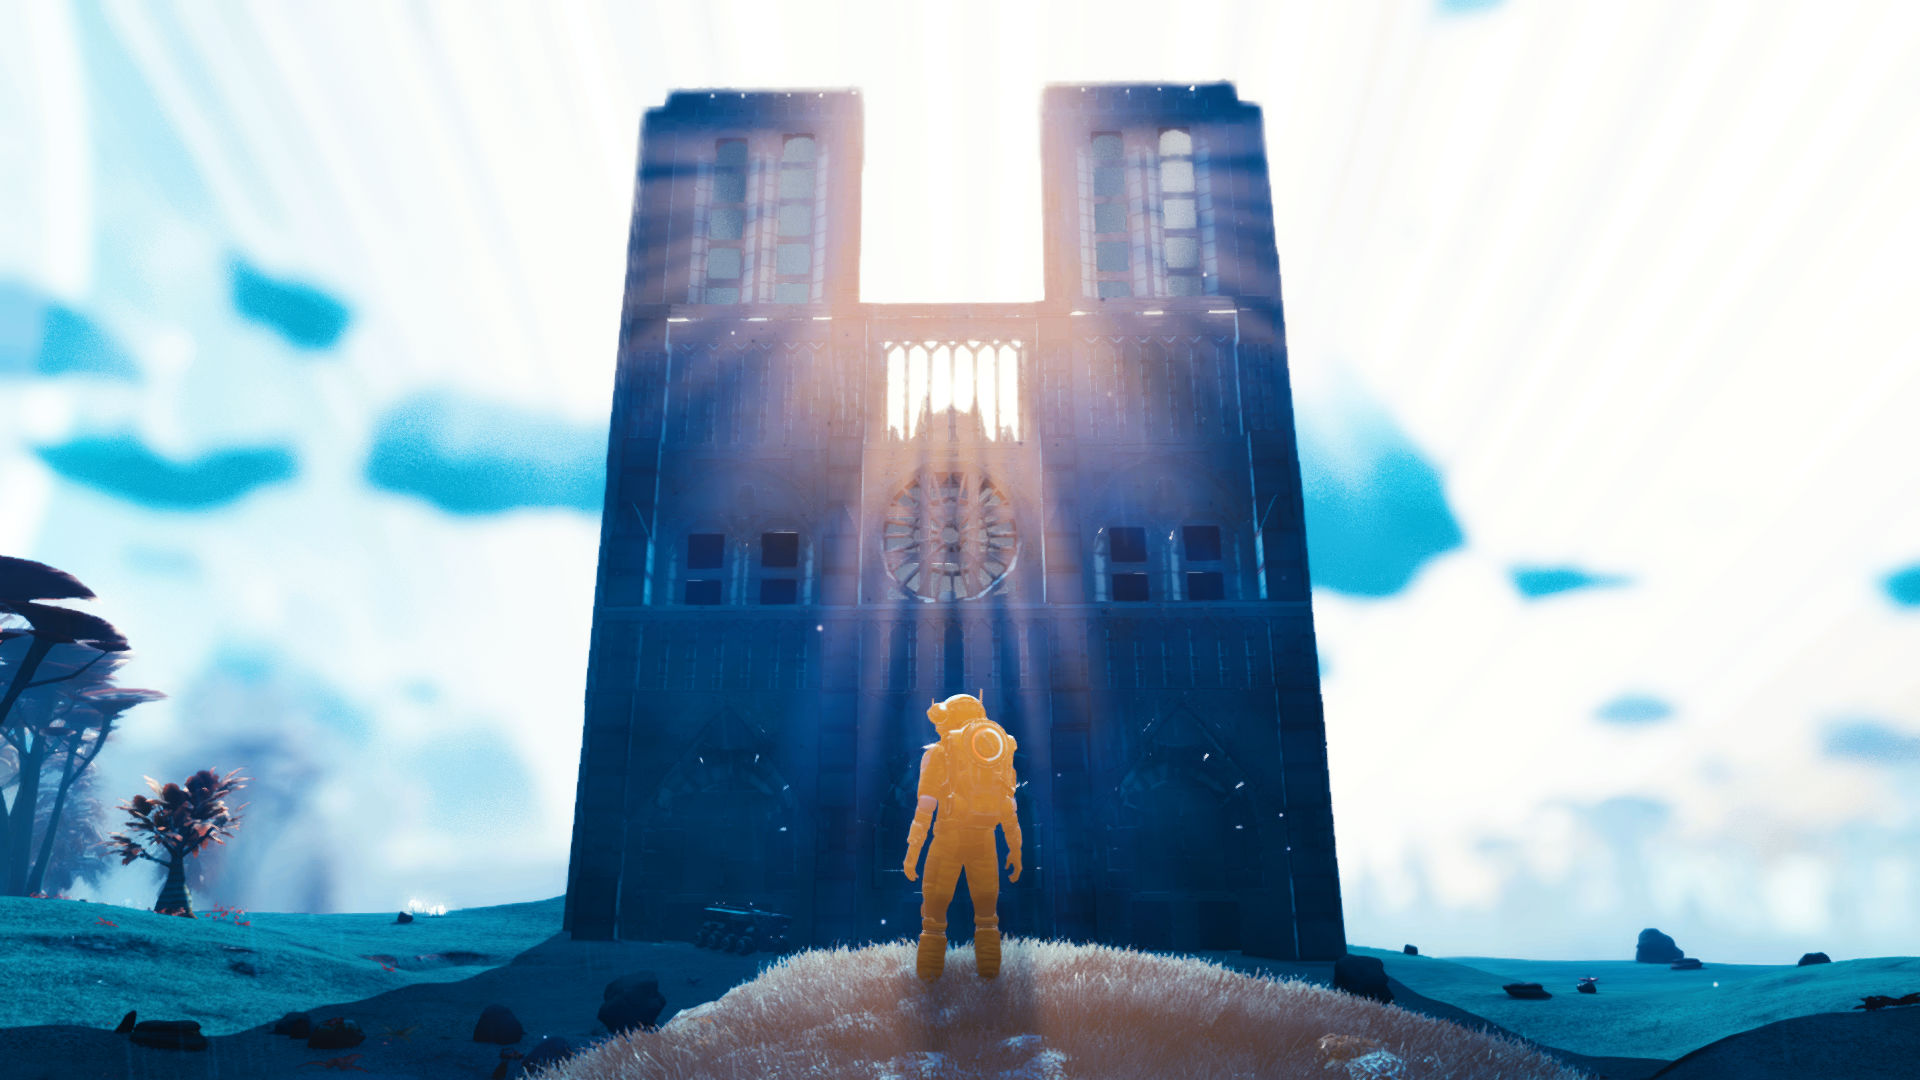 Check out this stunning No Man's Sky recreation of Notre Dame